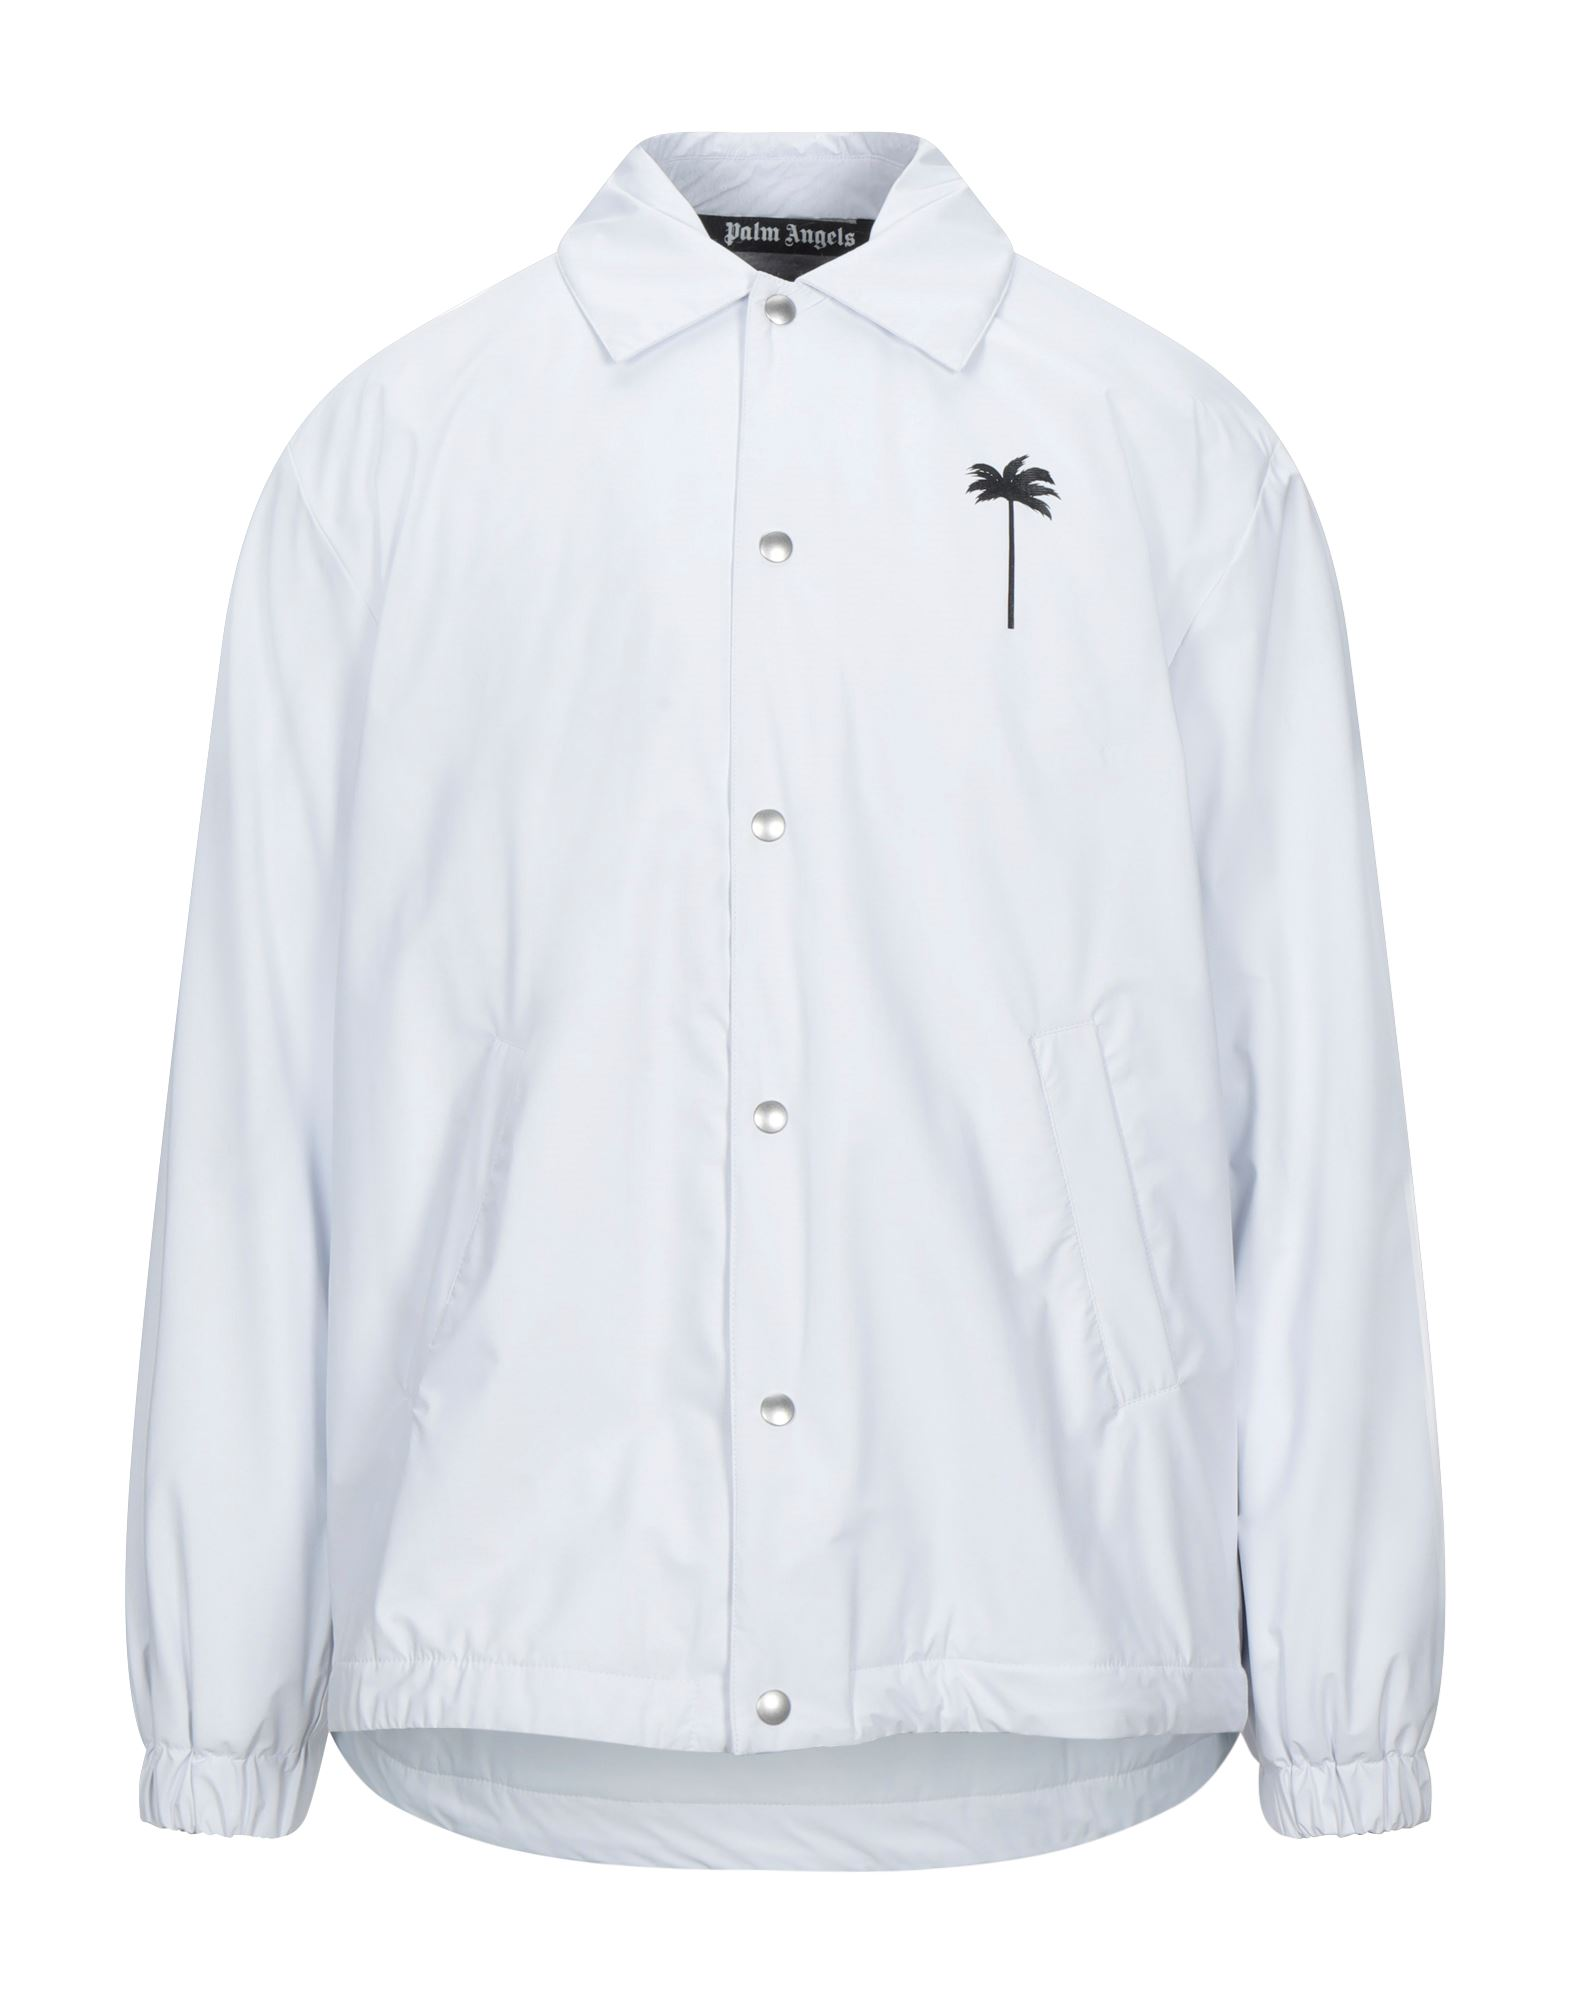 PALM ANGELS Jackets. techno fabric, logo, print, solid color, single-breasted, snap buttons fastening, classic neckline, multipockets, long sleeves, fully lined. 68% Polyurethane, 32% Polyamide, Polyester